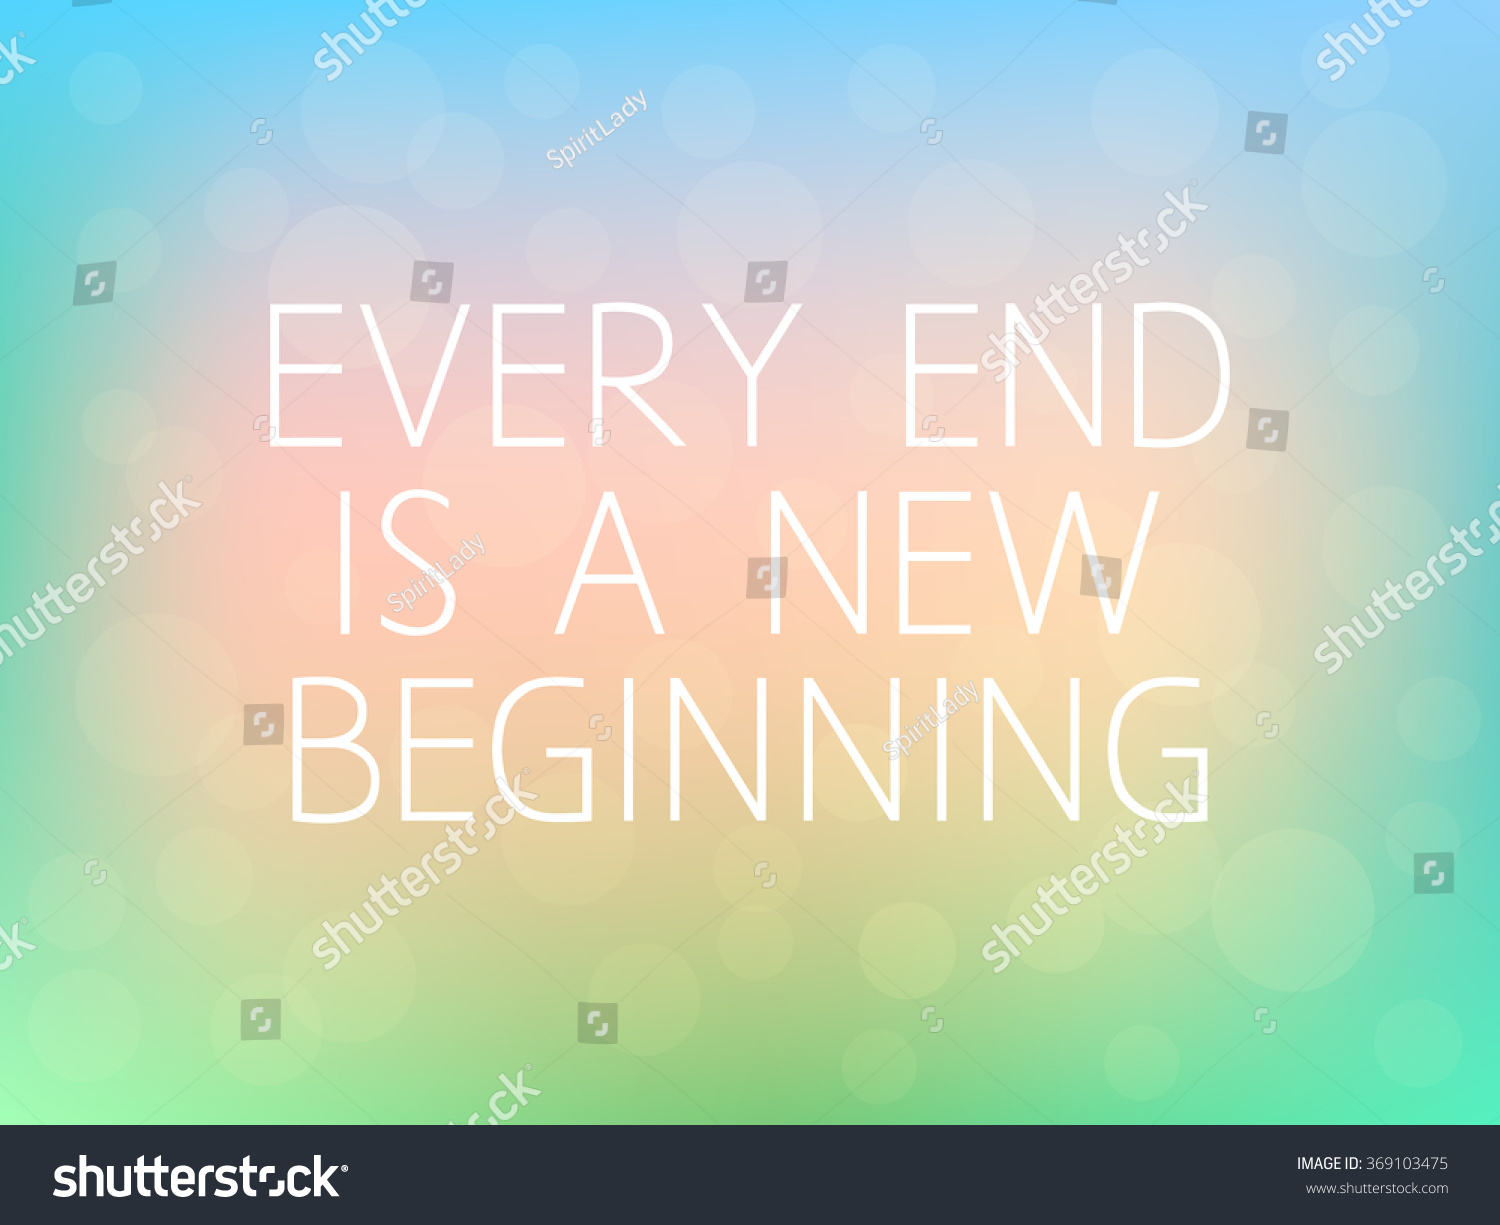 Every end is a new beginning essay writing